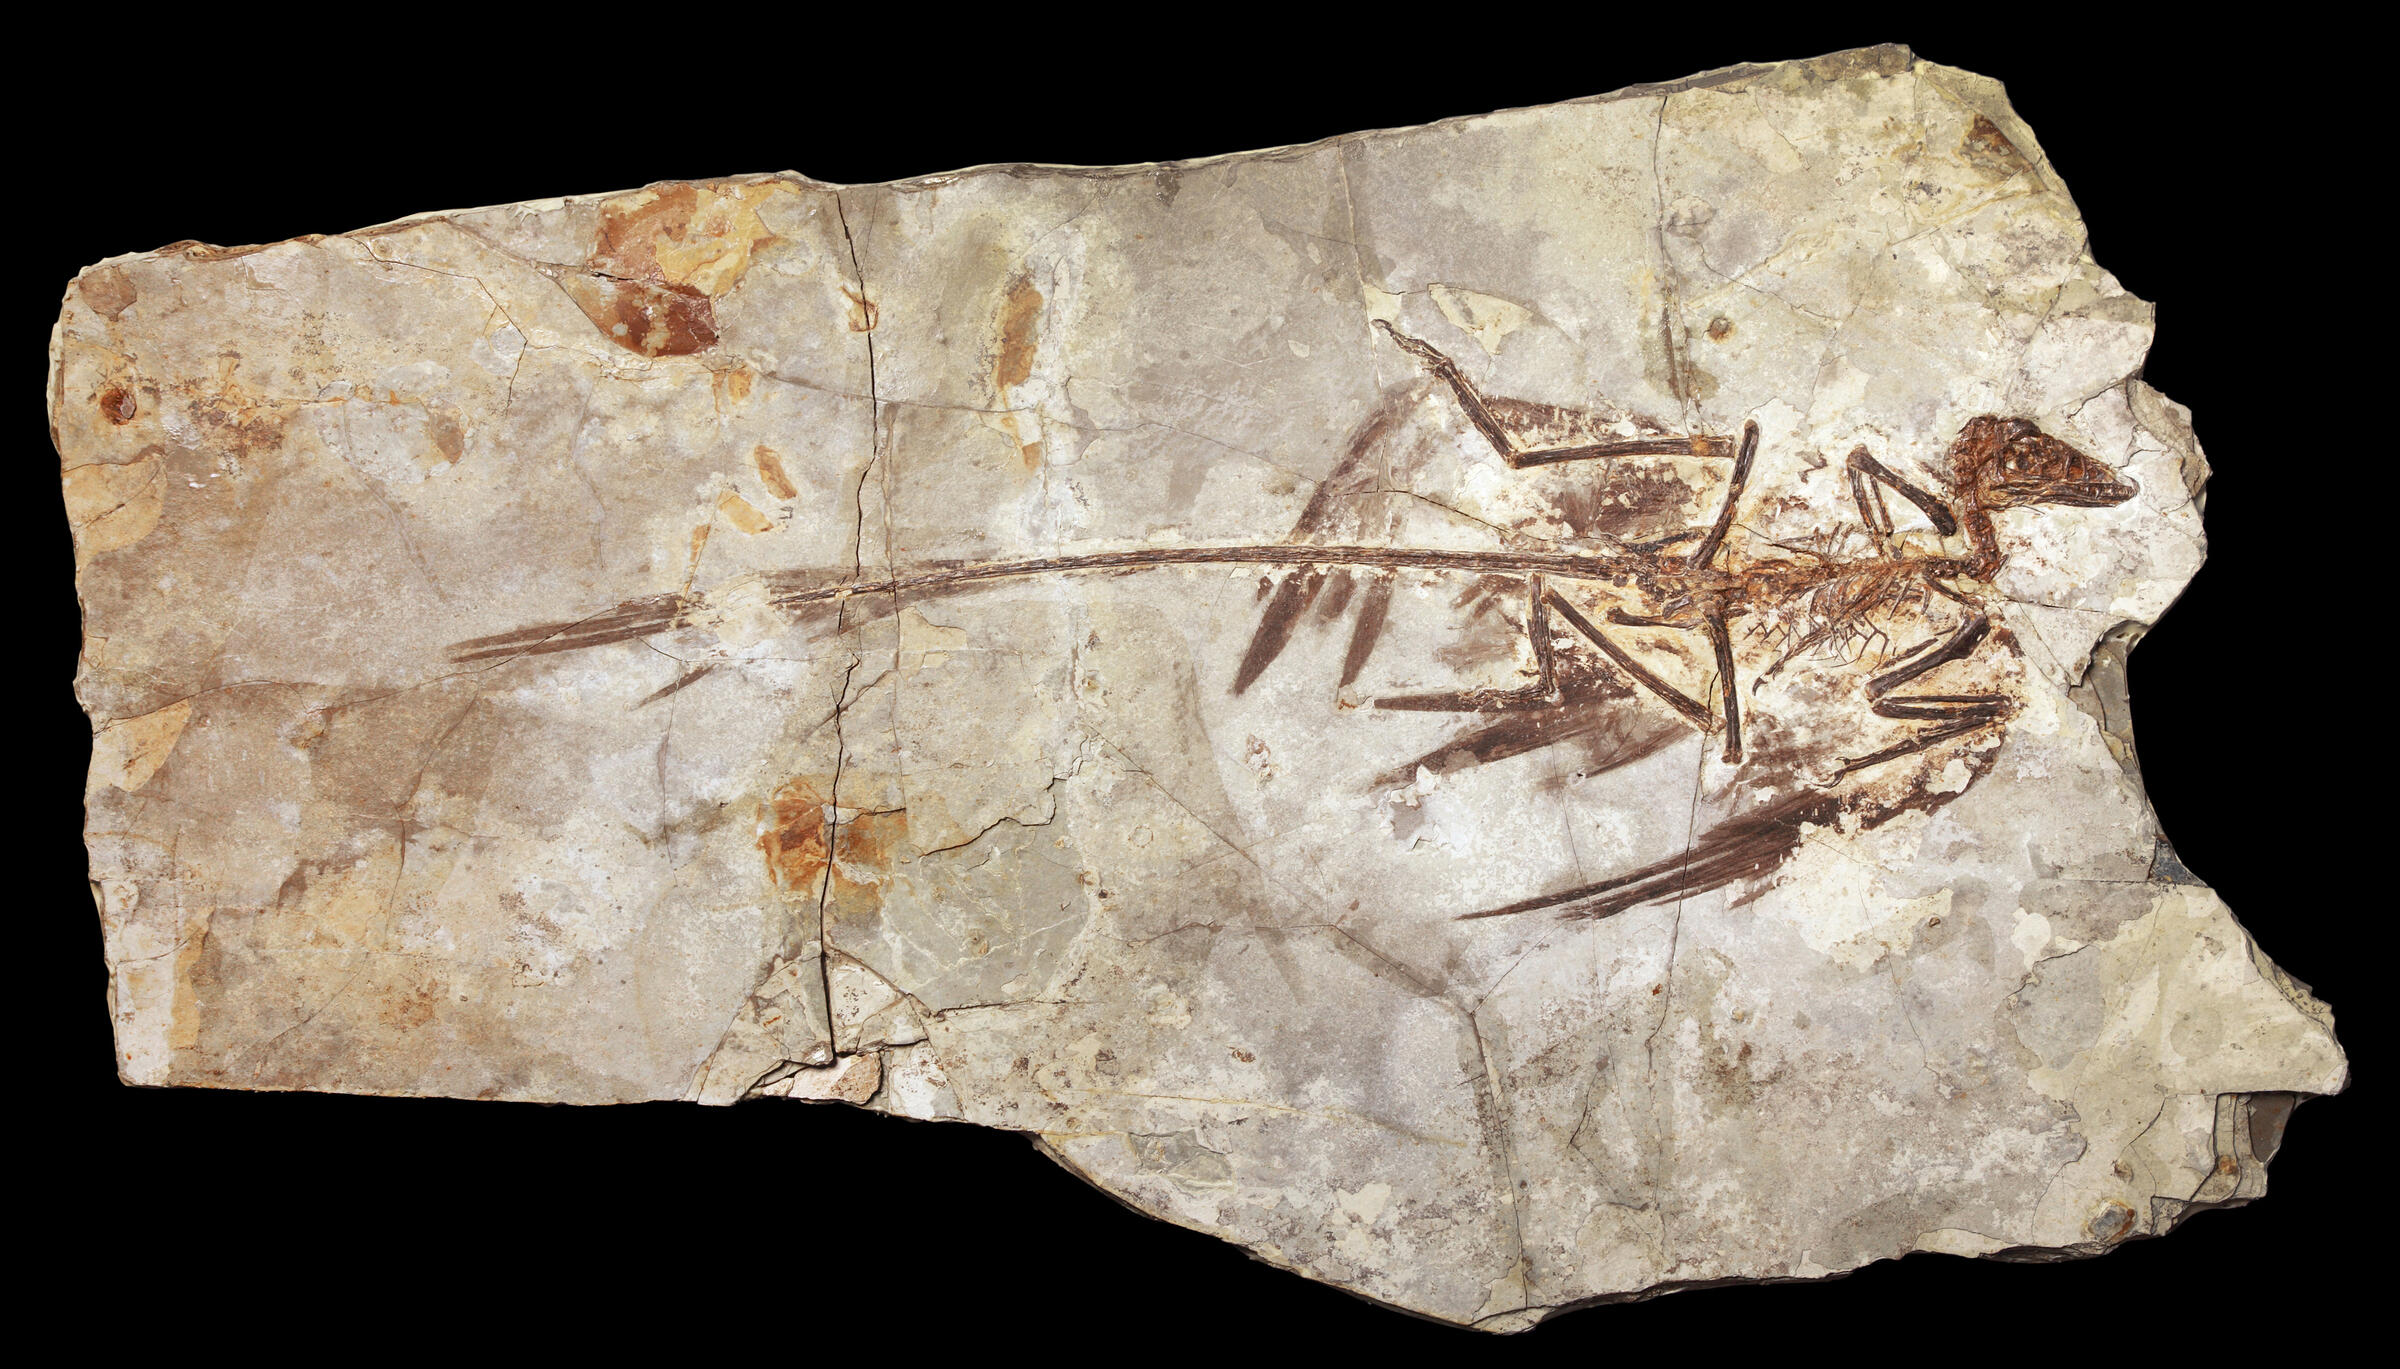 2000, Microraptor: This 130-million-year-old dinosaur, also from China, had four wings, demonstrating that some dinosaurs could fly and reinforcing the growing consensus that birds were dinosaurs. AMNH